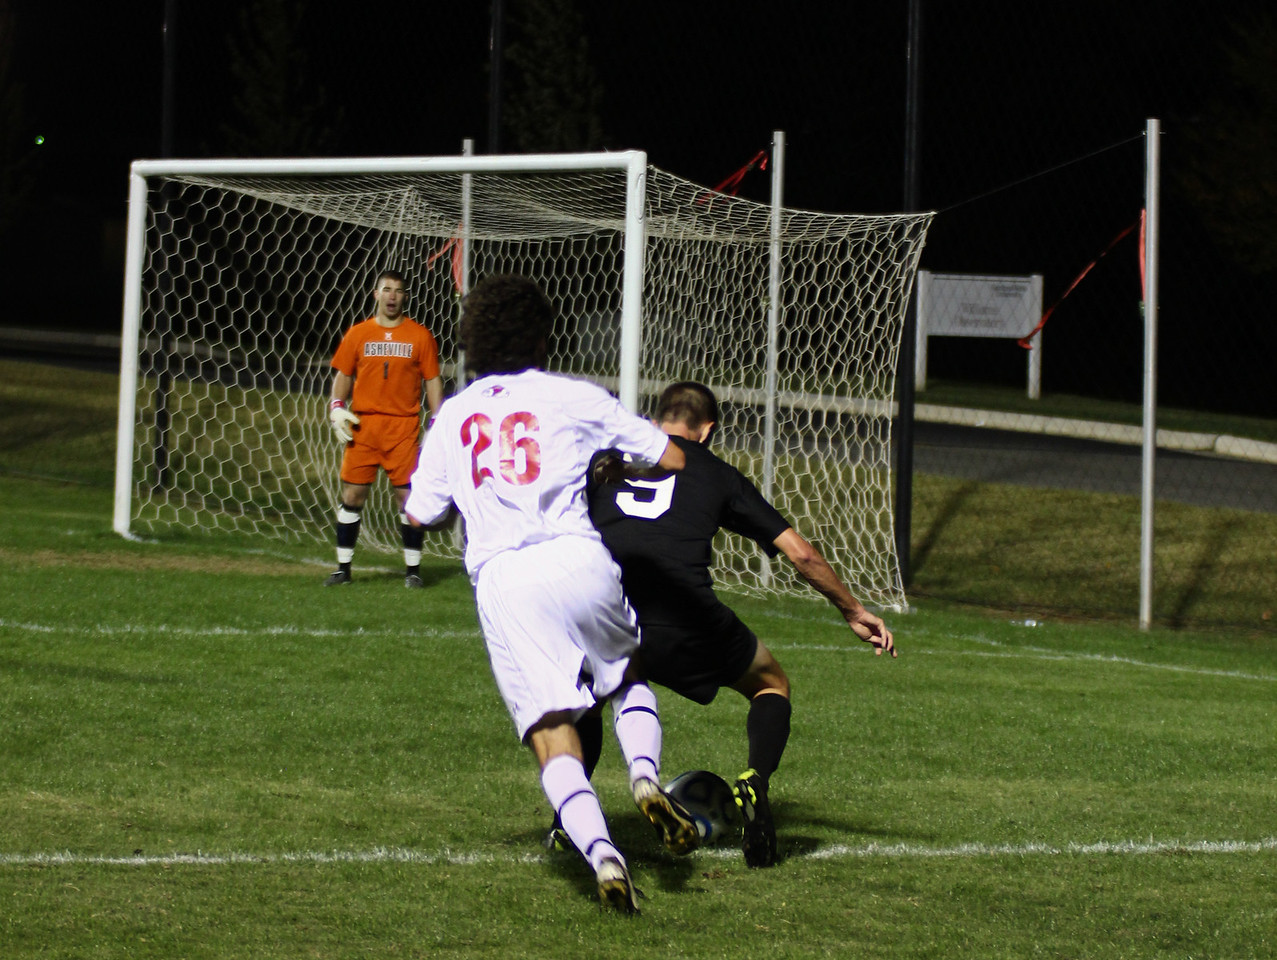 The GWU Bulldogs took home a 1-0 win against UNC Asheville on October 19th.  photo by Bryan Cooper